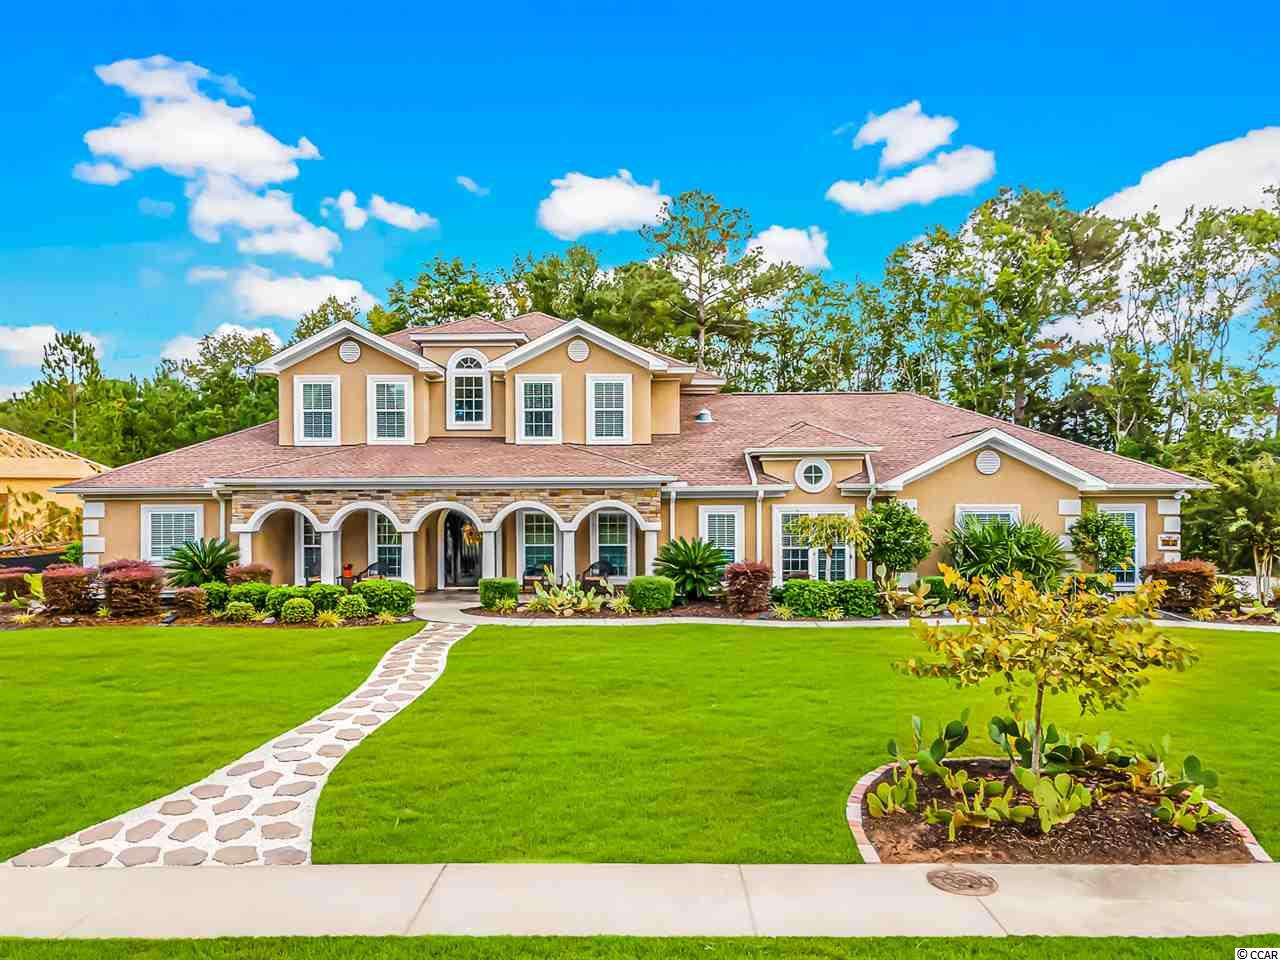 Come see this one of a kind custom award winning home, designed by owners, built by Majestic, in Wild Wing Plantation. This spacious 4 bedroom, 3.5 bath home, 3,448 ht. sq. ft., 4,836 sq. ft. under roof, is located on large .71 acre lot located on the 2nd hole of Wild Wing Hummingbird Golf Course. The home features Hardwood Brazilian Cherry floors throughout the home. Enjoy the spacious living room, with high cathedral ceilings and gas vented fireplace. The upgraded kitchen features a large island, gas range, vegetable sink, upgraded cabinets, & available to include a wine chiller. The attention to detail with mosaic tile in the home and 5.1 surround sound in great room with speaker system in all rooms of the home, as well as outside front & back porches. Hurricane rated doors and windows are throughout the home. The solar package installed includes solar attic fans & solar tube lighting. The large master bedroom, with tray ceilings, offers 2 walk-in closets, and opens up to a spacious master bath. Enjoy the heated floors getting into your whirlpool tub or large walk in shower. The office could be converted into a 4th bedroom. Entertain guest in the upstairs living space includes princess suite equipped with another bedroom and full bath. The 2nd living area has hot/cold pipes ready to have a wet bar installed. Enjoy the privacy on your newly installed screened porch. Fully pavered patio will lead you to your private jacuzzi. The oversized full 3 car garage features plenty of storage. Enjoy all the amenities including clubhouse, pool, and tennis court. Close to all shopping, restaurants, and attractions Myrtle Beach has to offer. Founders Golf membership could be included, with offer to 21 award winning golf courses.